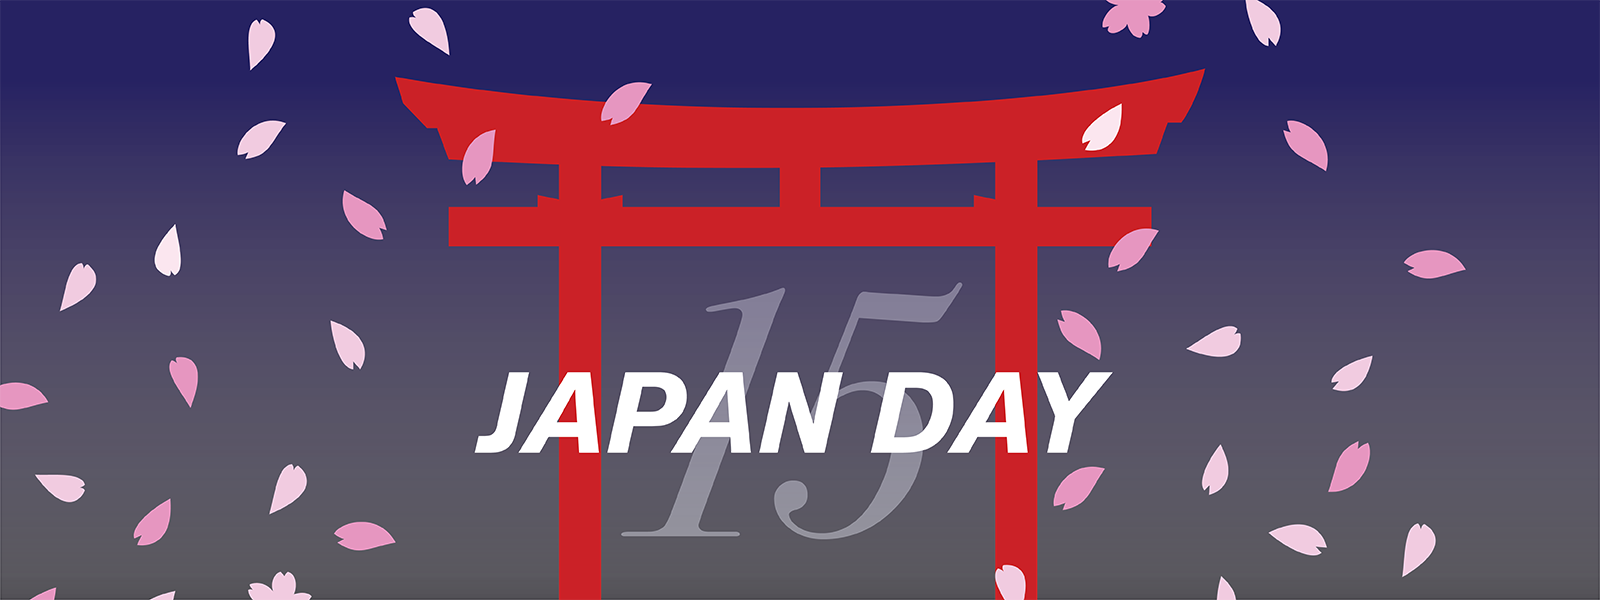 Japan Day 2015